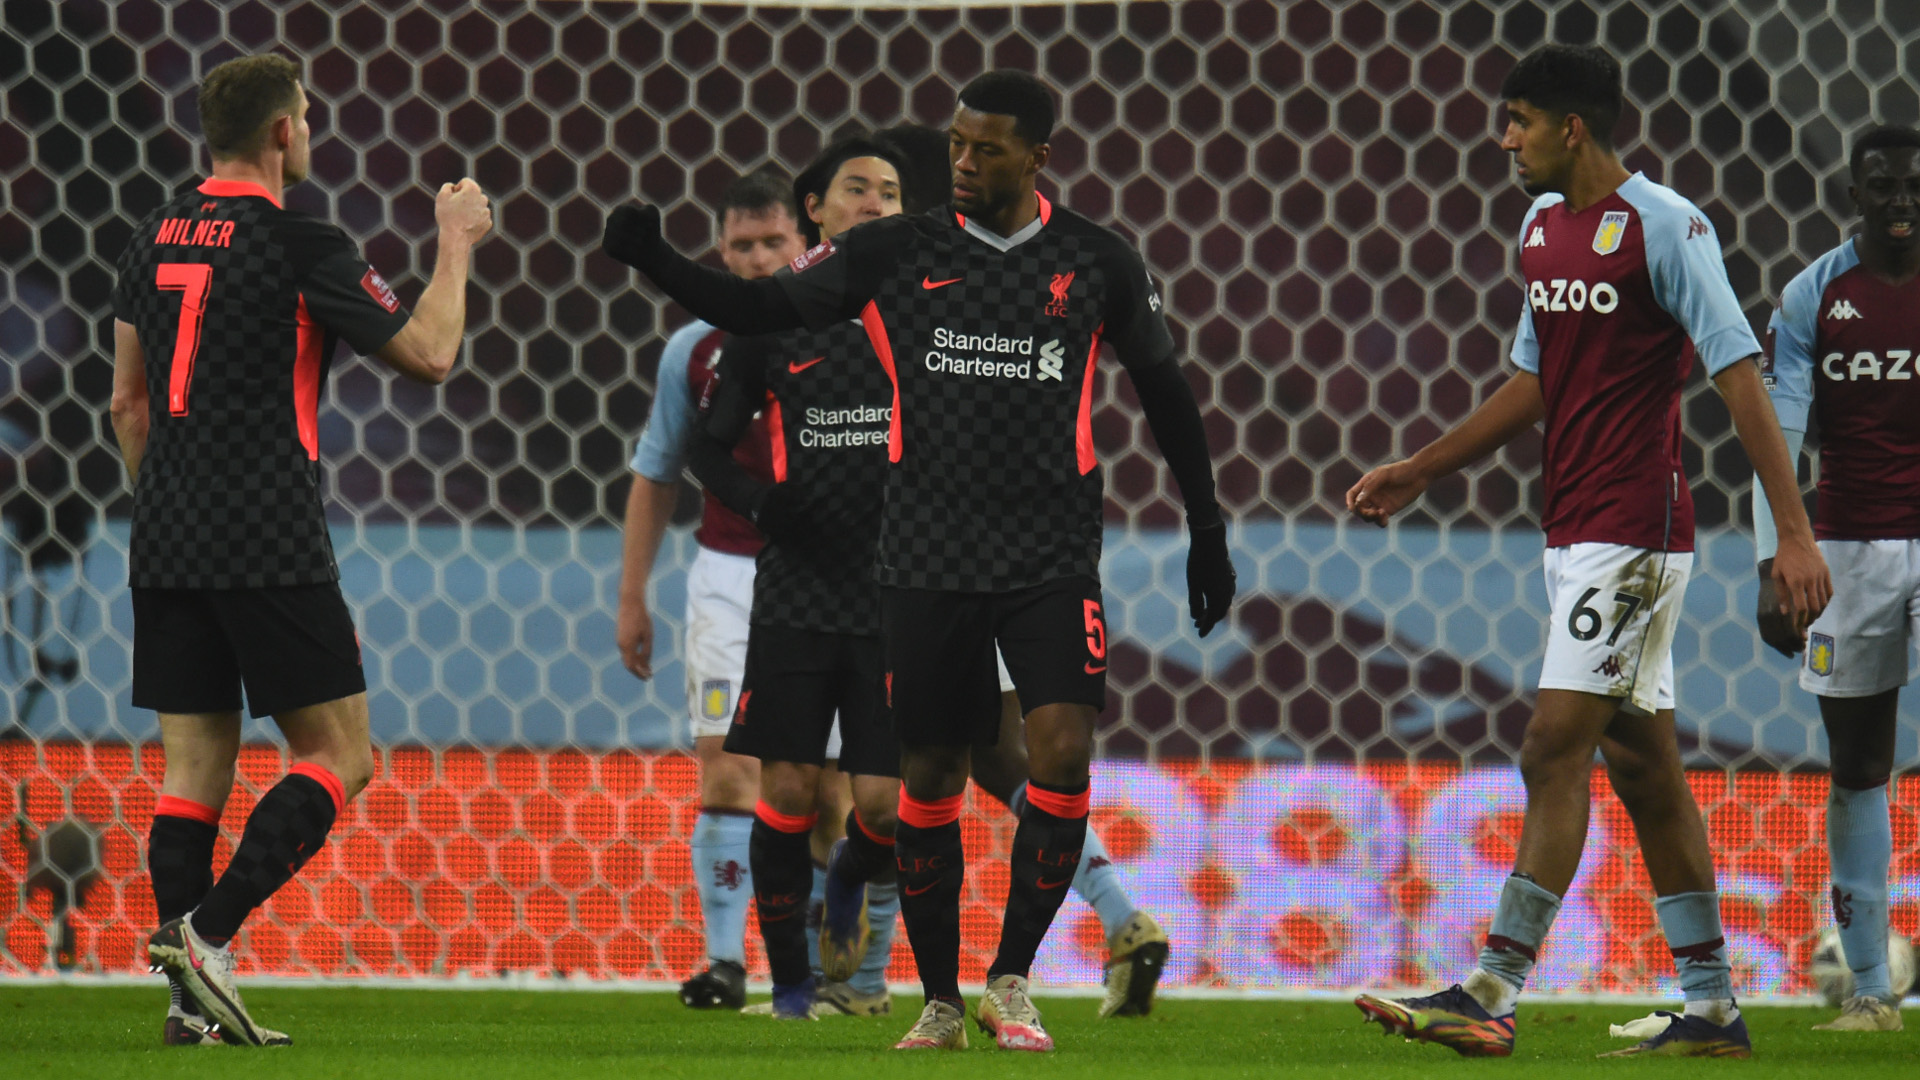 Aston Villa 1-4 Liverpool: Reds survive scare from youthful hosts